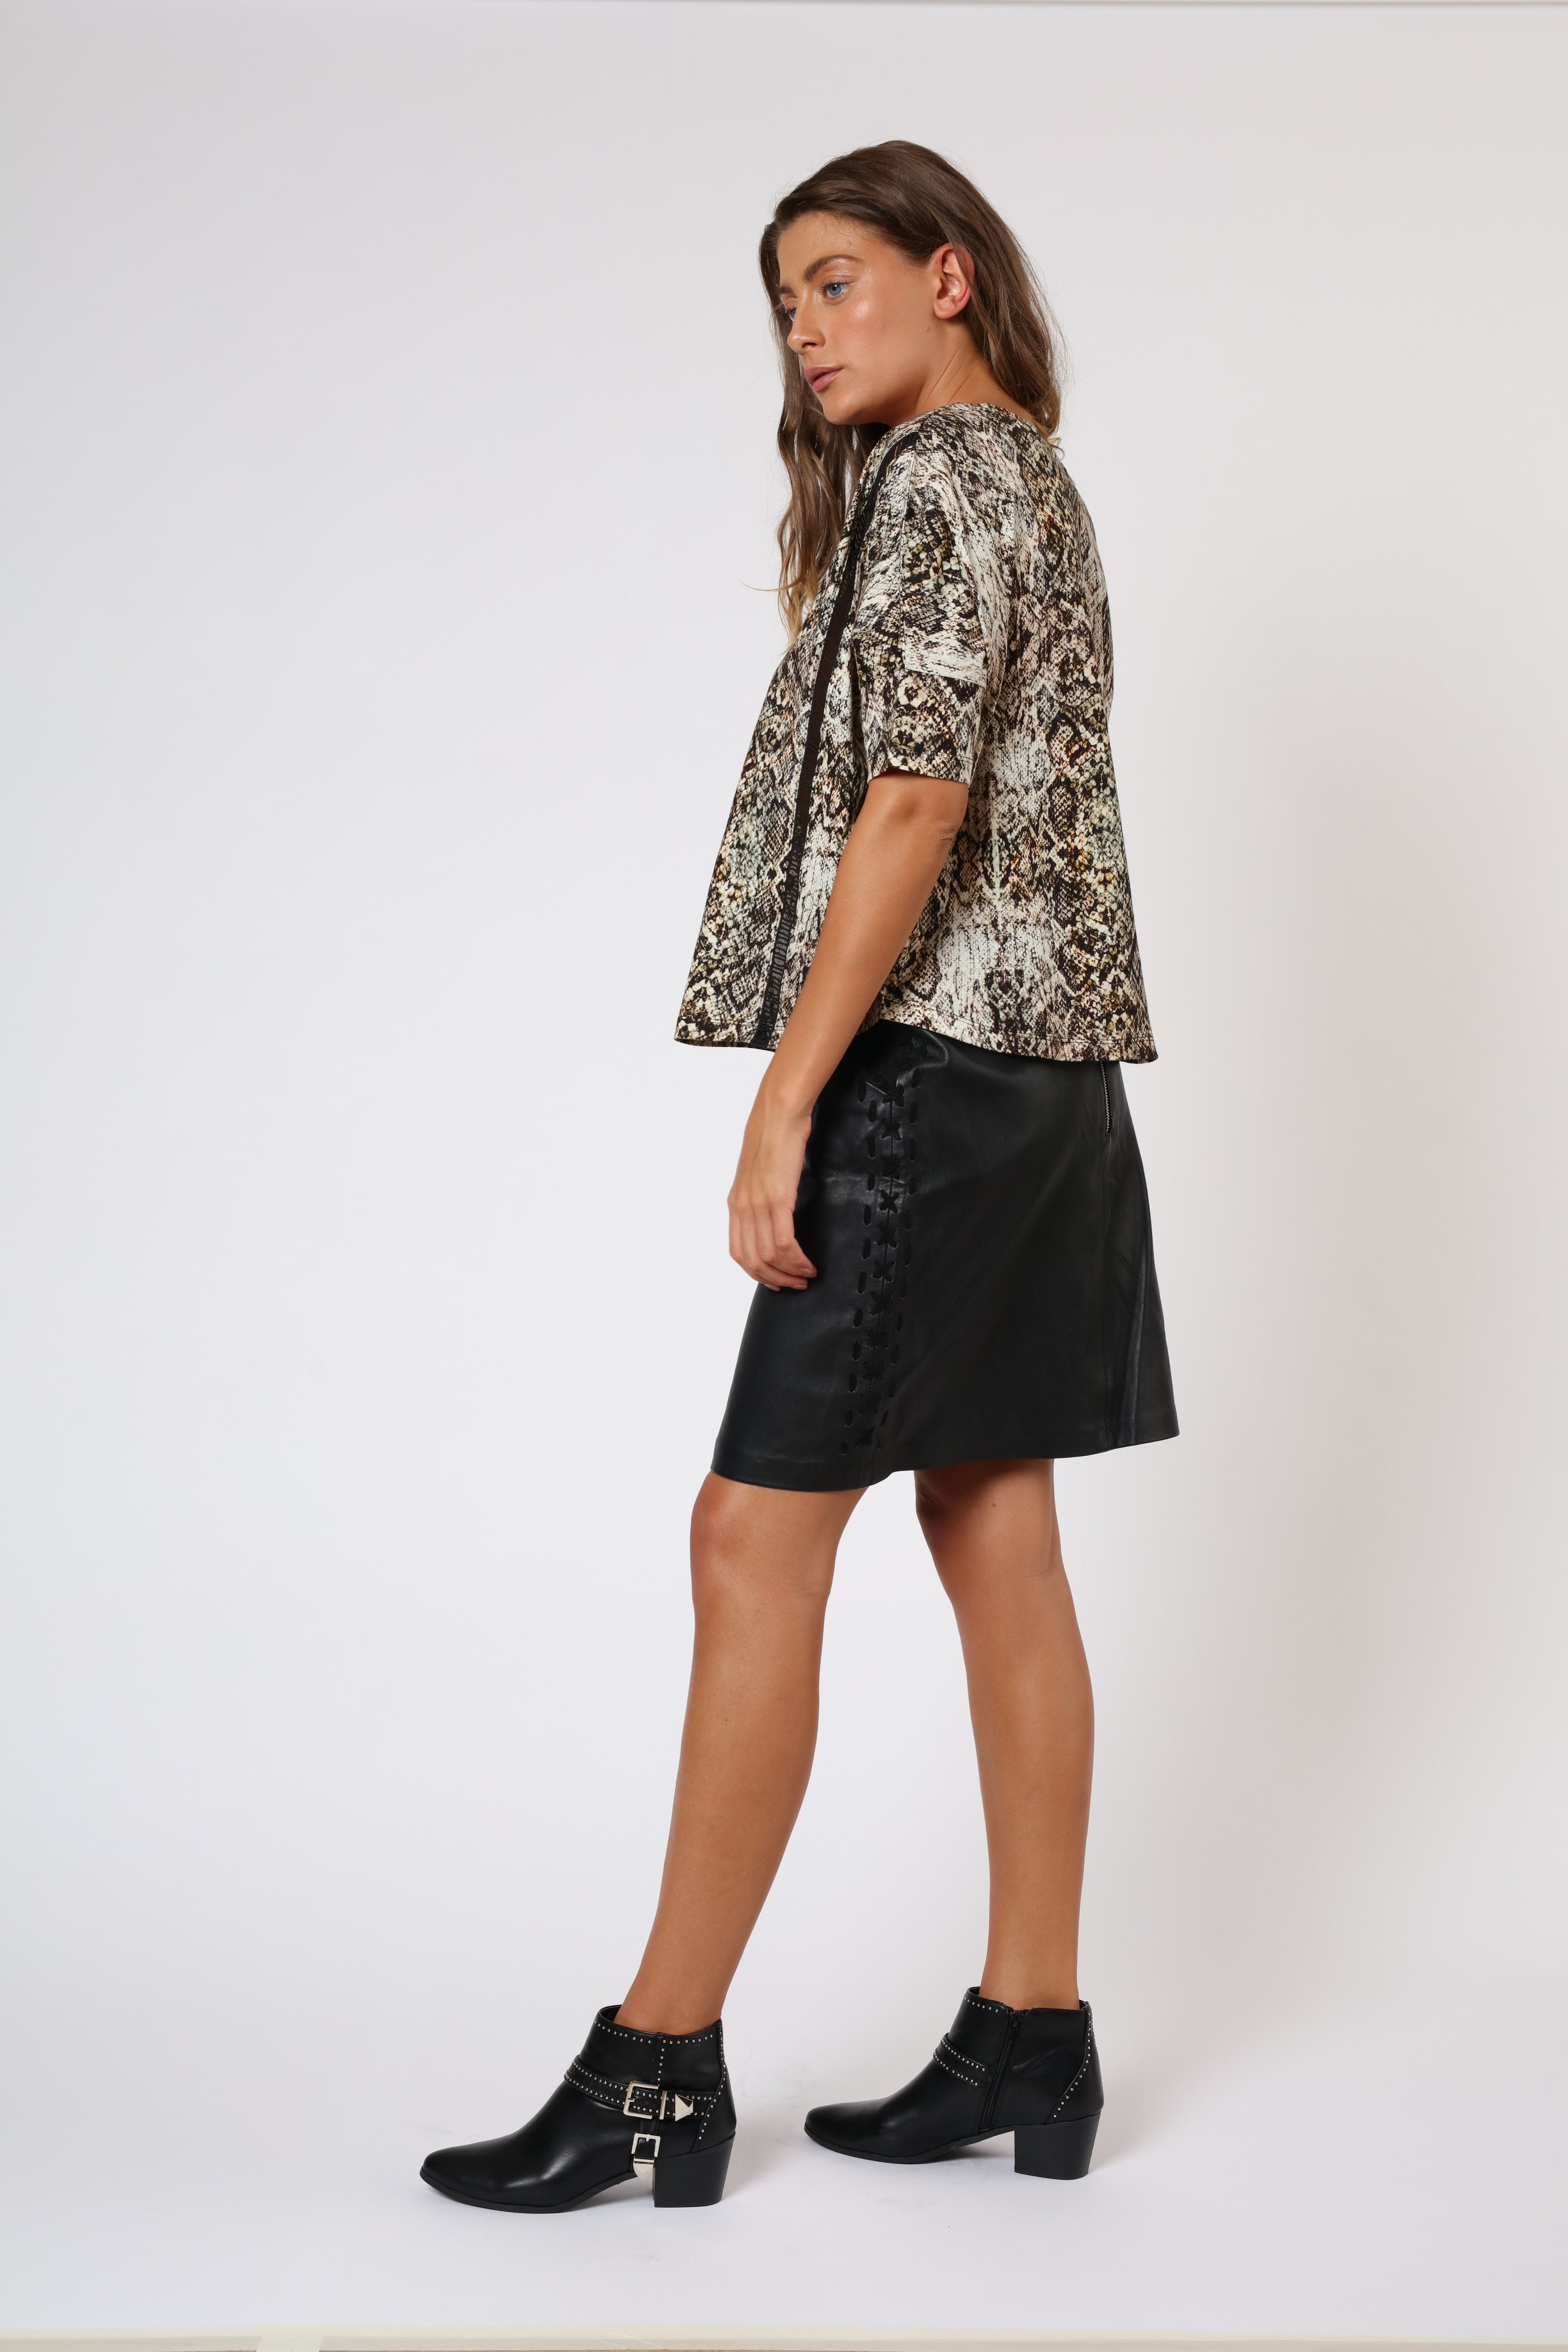 oversized tshirt with snake print